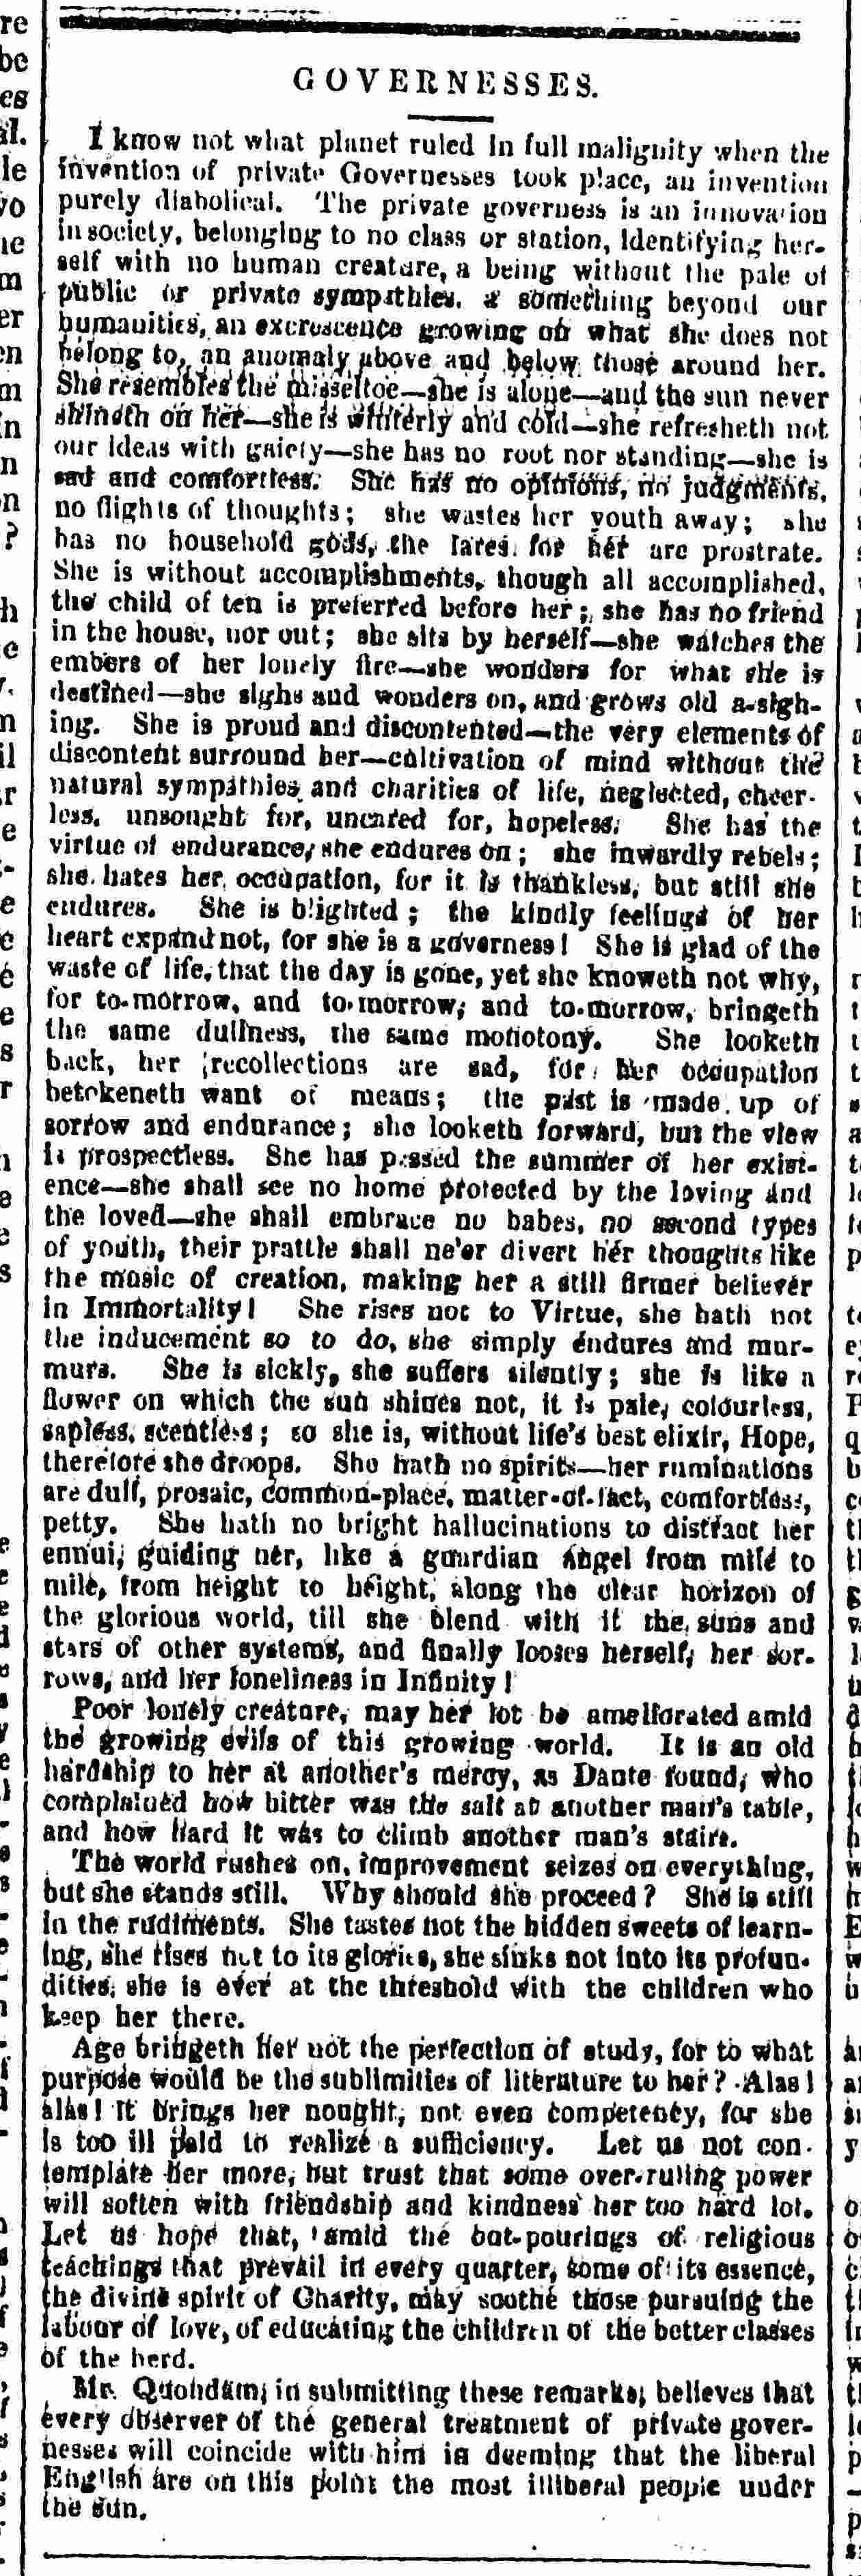 Newspaper article about the private governess from the Penny Satirist [page: 2]